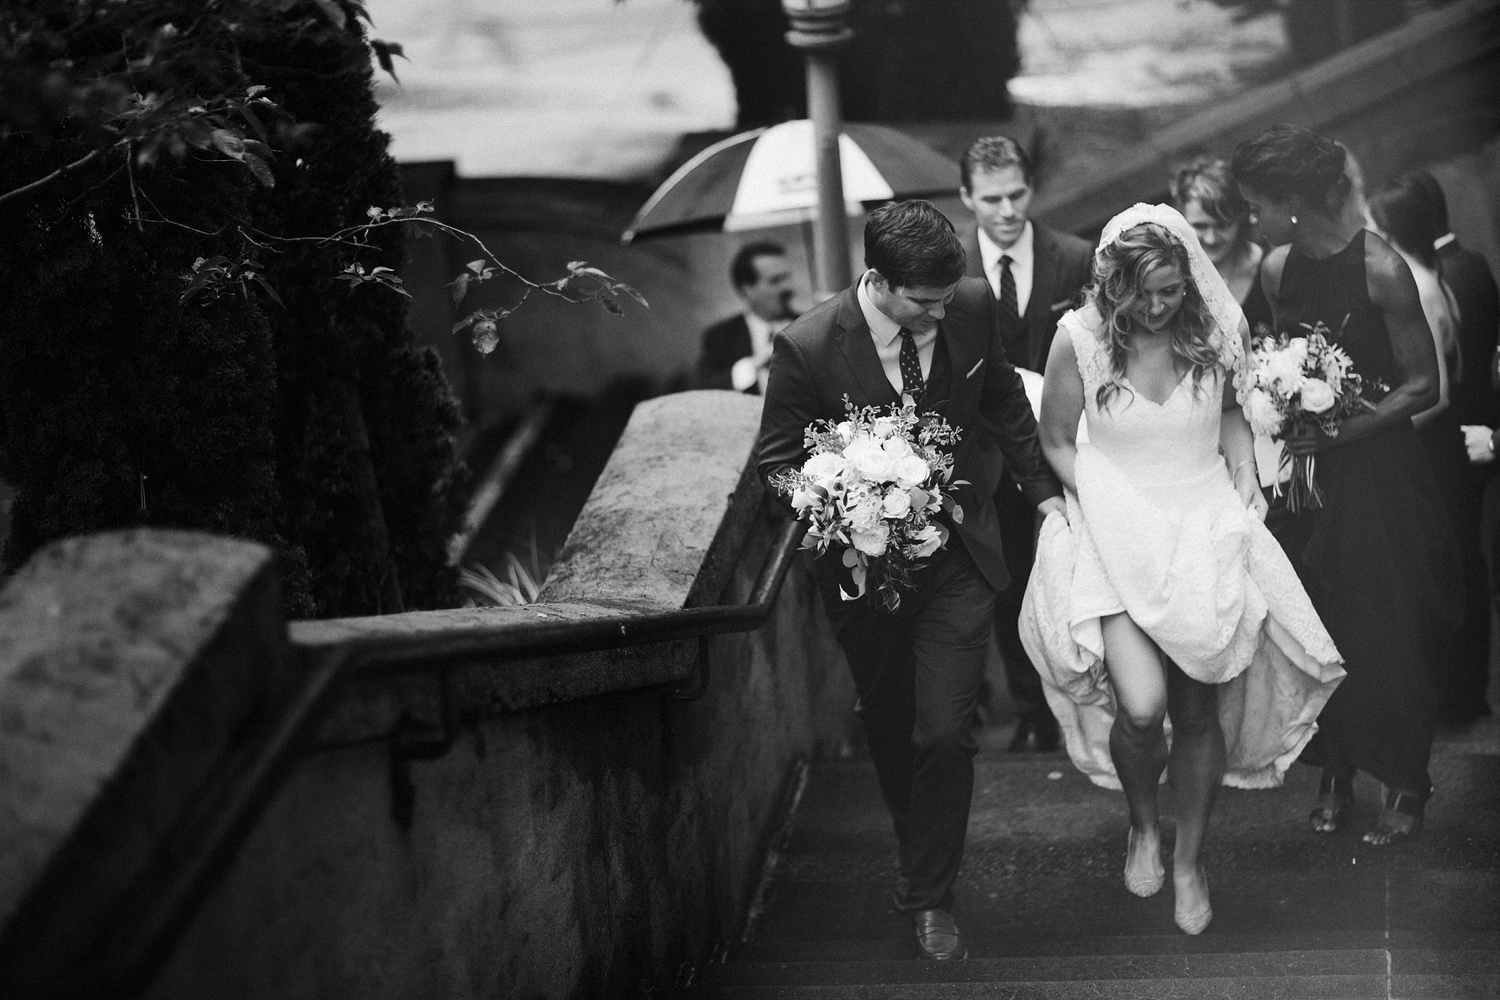 ryan-flynn-photography-best-wedding-photos-2014-0145.JPG